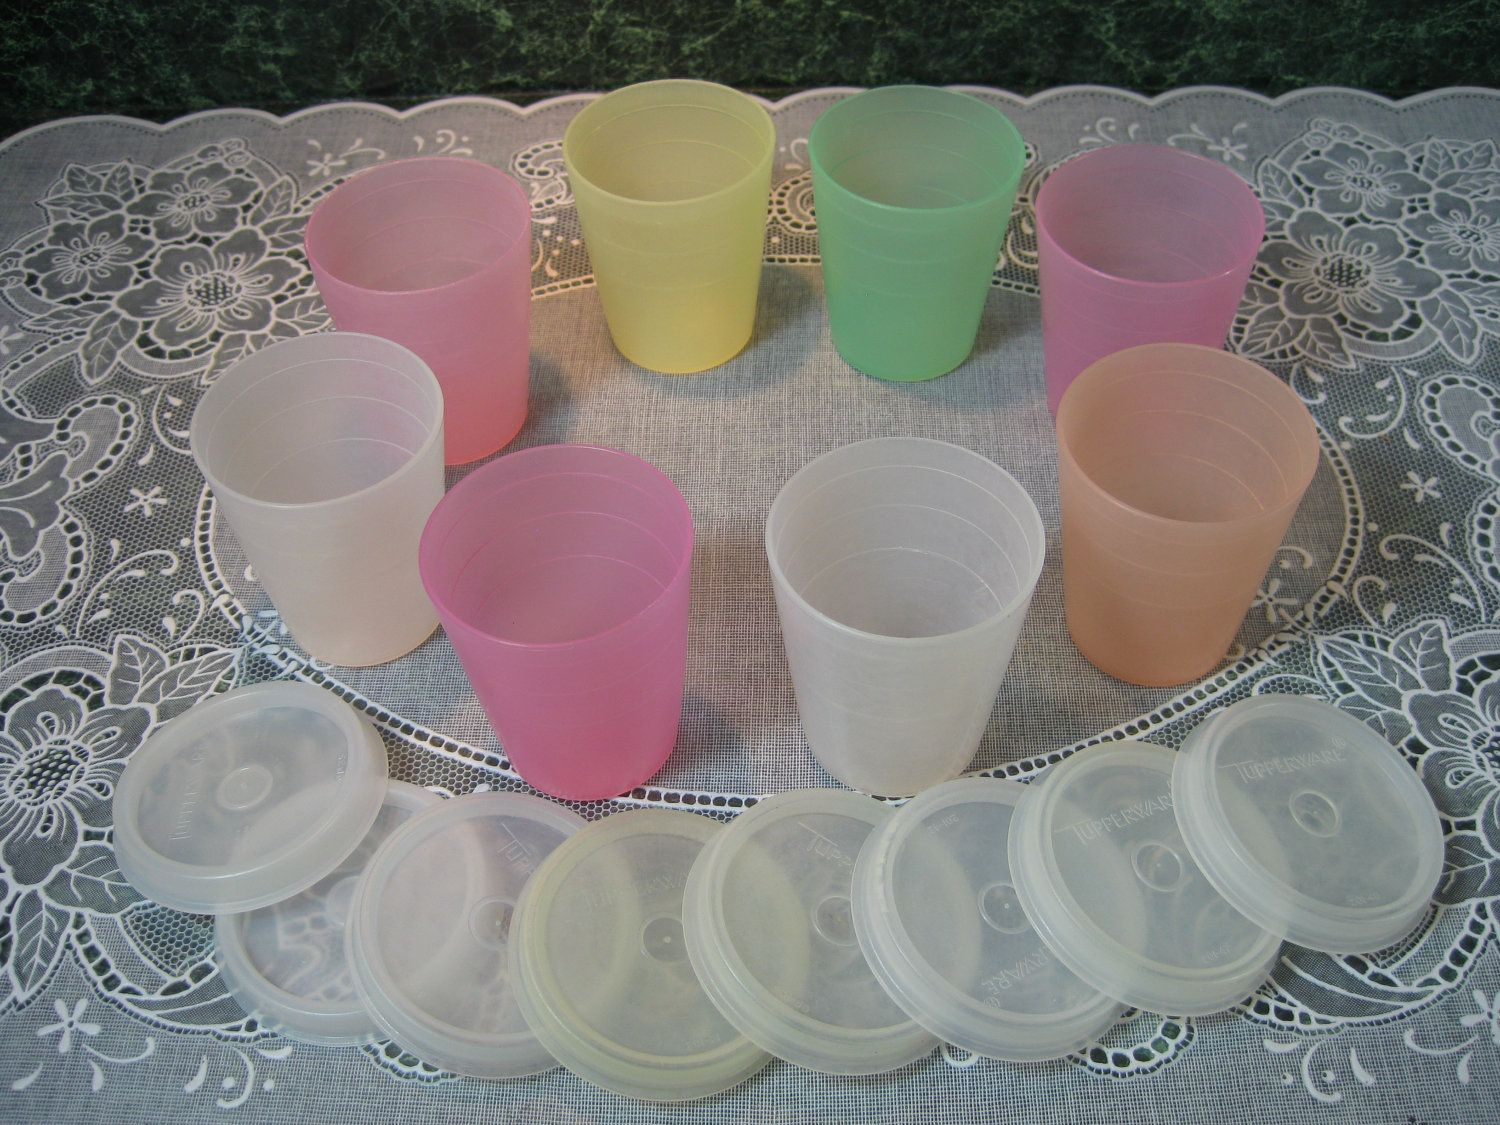 How many of us went to a Tupperware Party and bought these because we needed to buy something!  These are noe going for $45.00 on Etsy!